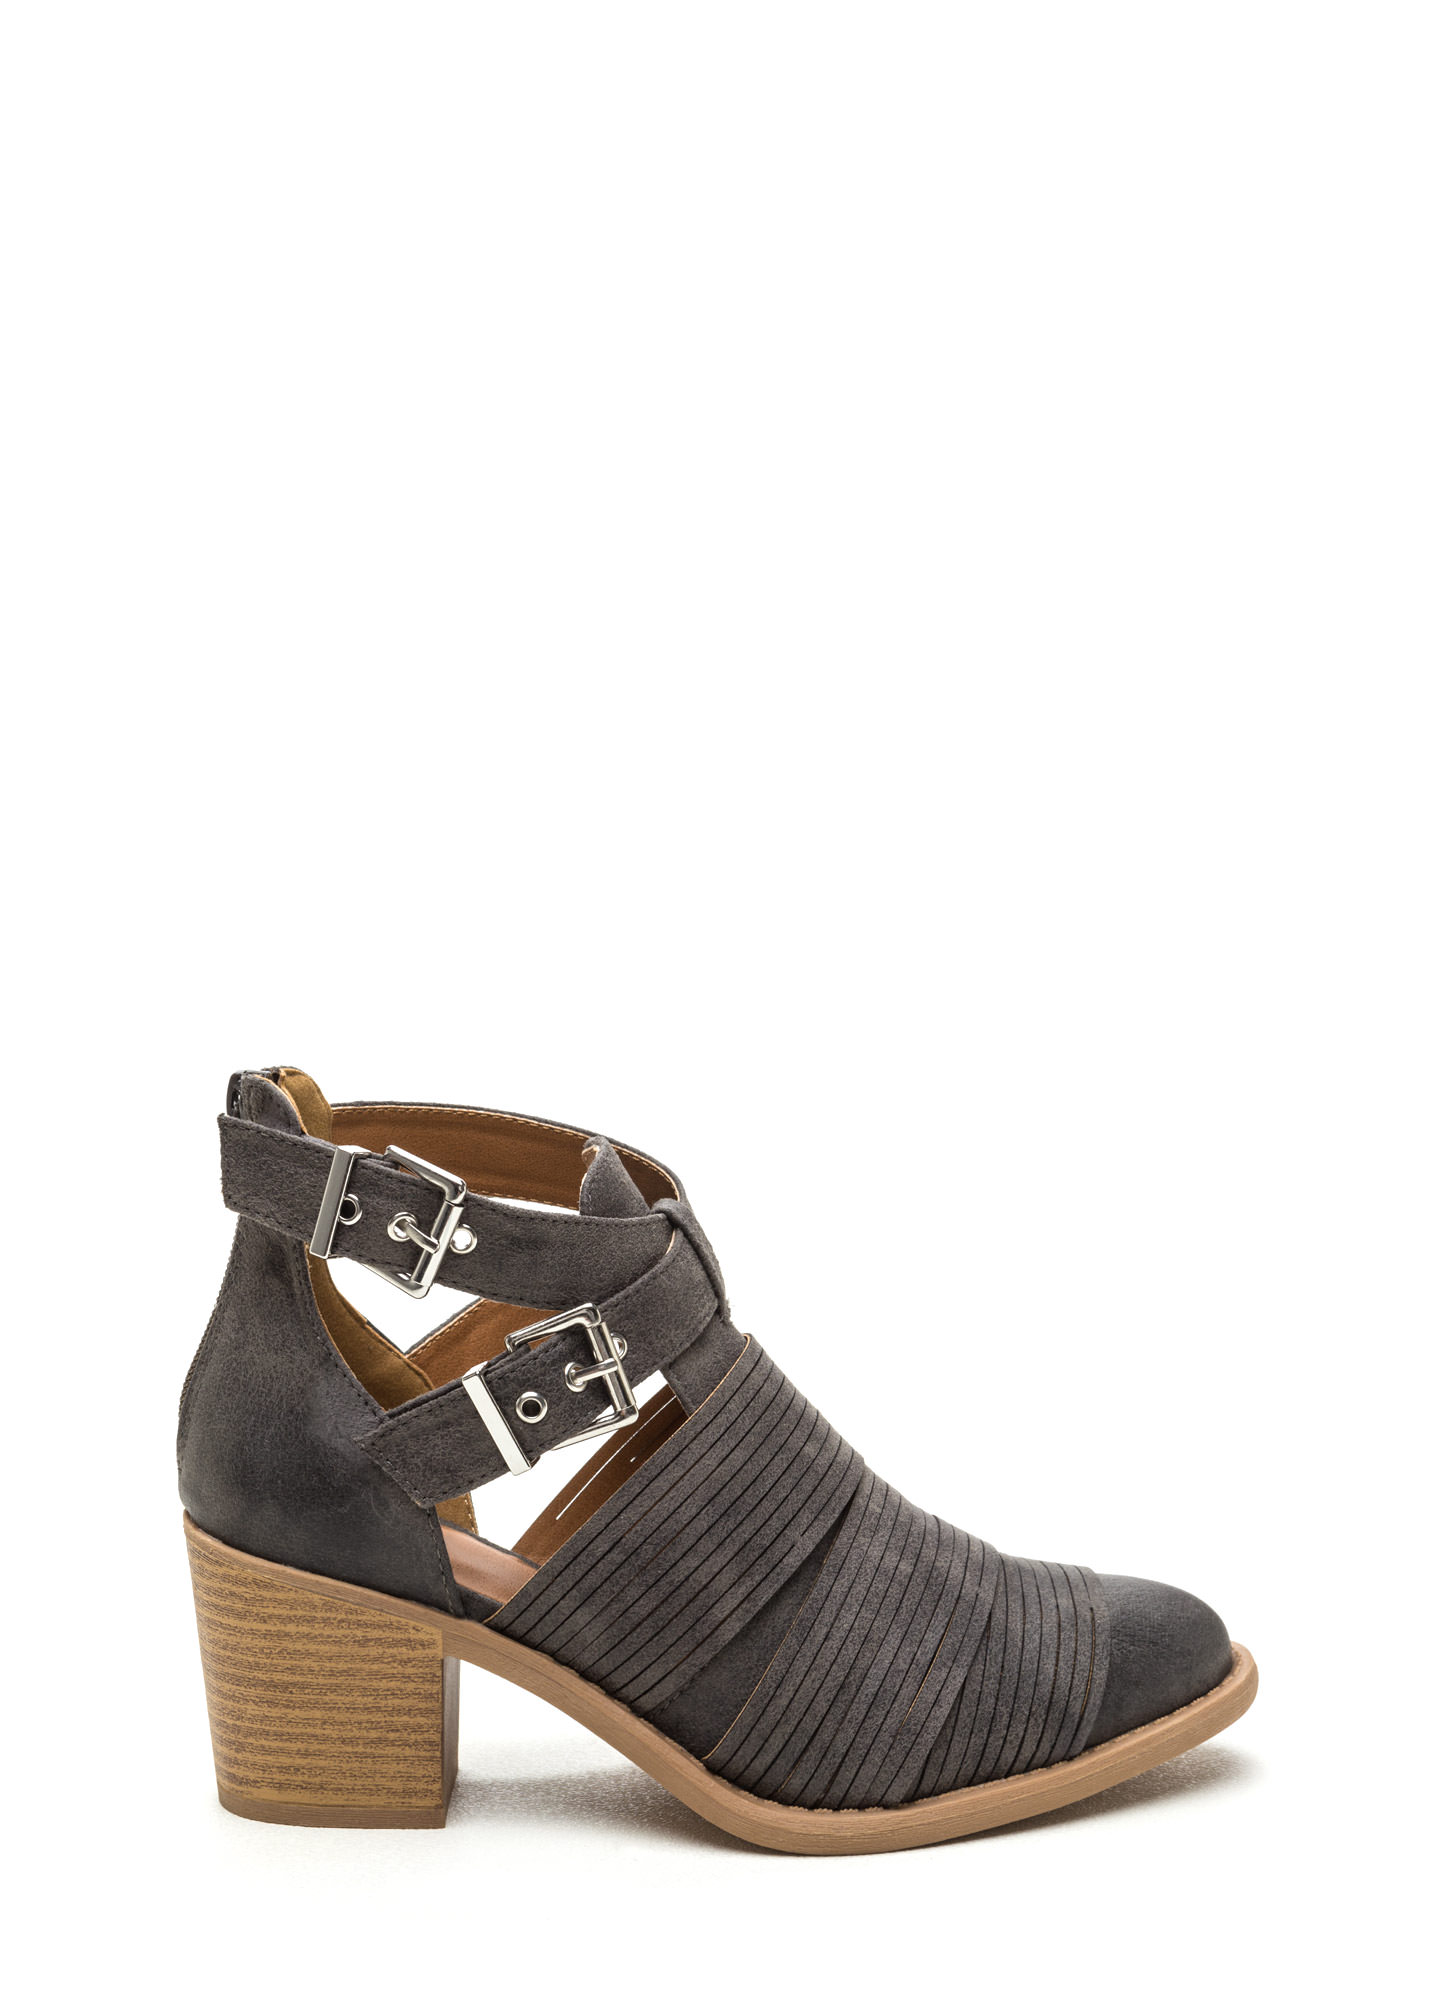 Make The Cut-Out Booties GREY